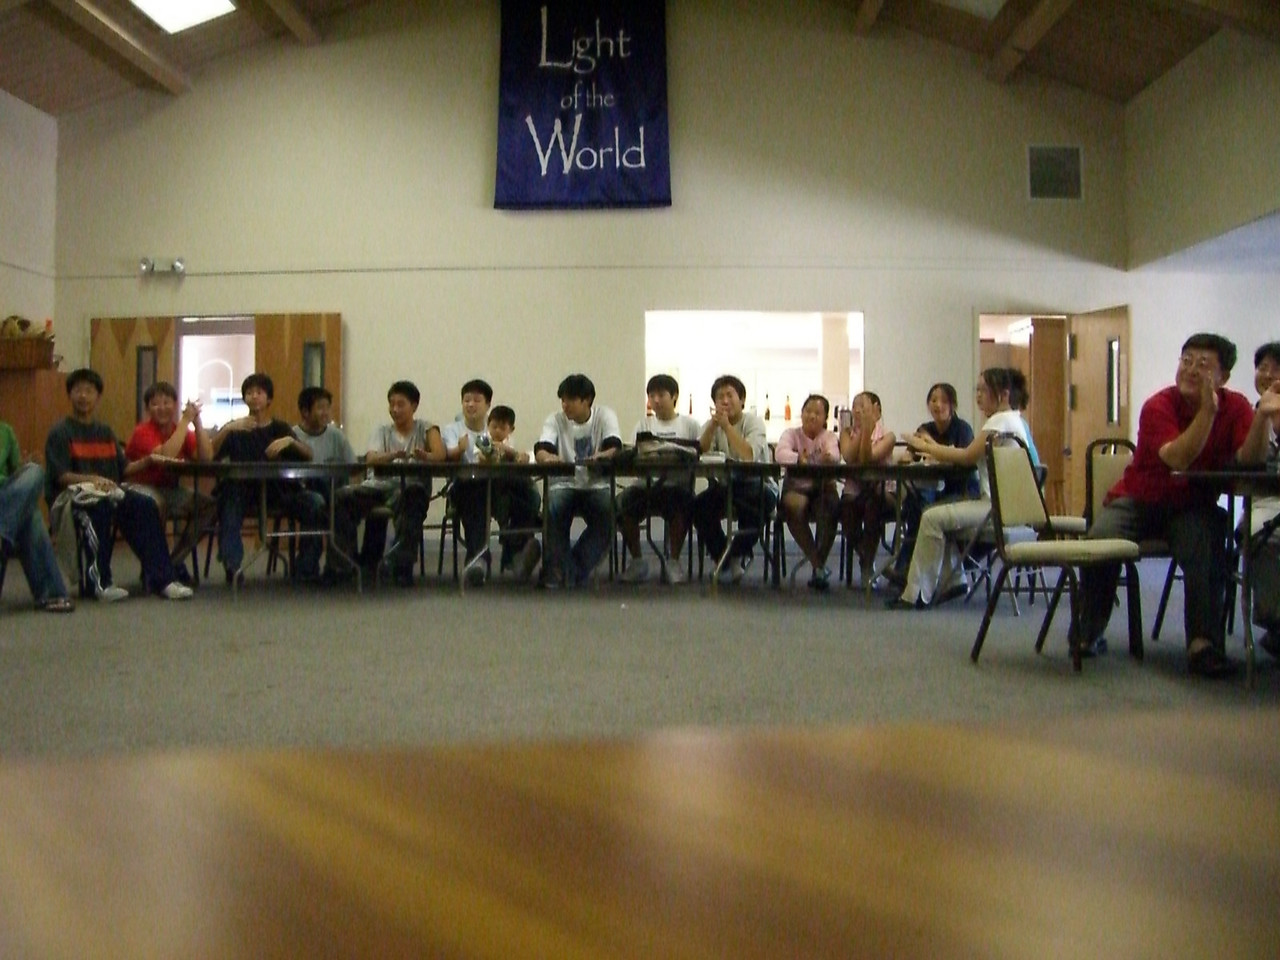 2005 09 18 Sun - Purpose Driven Life Bible quiz - Clay Youth Group team 2